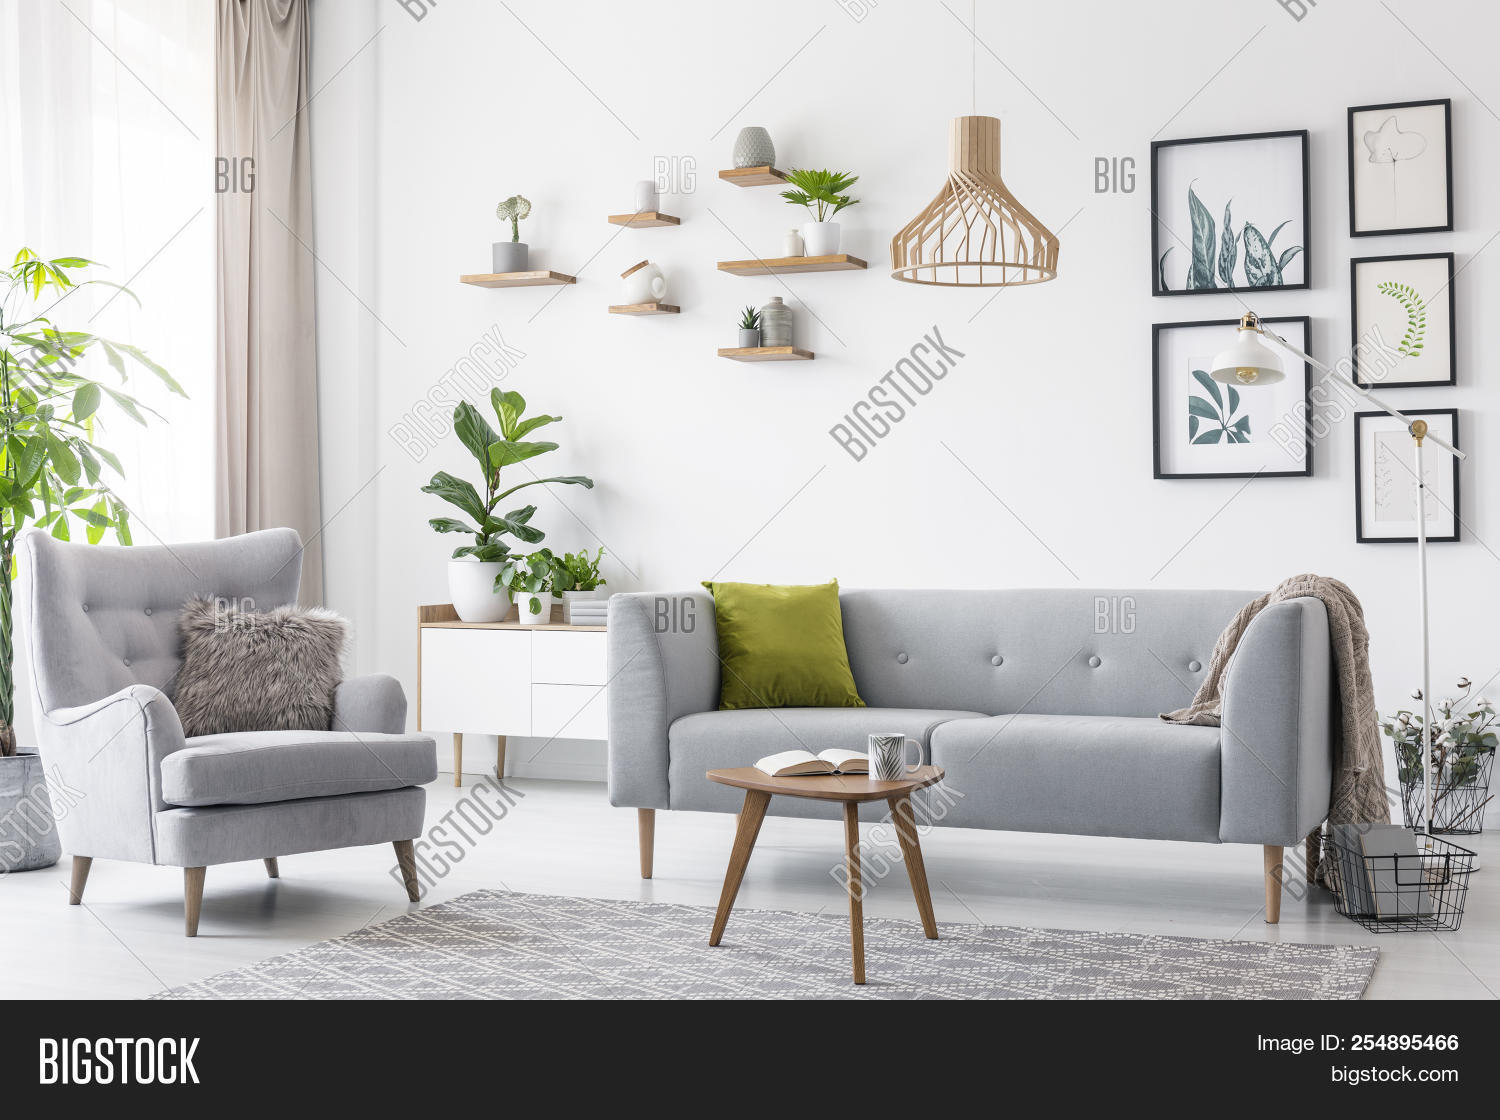 apartment,blanket,blinds,bright,chair,coffee,couch,cushions,decor,design,desk,eco,empty,flat,freelancer,furniture,gallery,gray,home,hygge,industrial,interior,job,lagom,light,living,minimalist,modern,natural,office,pictures,pillows,plants,remote,room,rug,scandi,scandinavian,settee,shelves,sofa,spacious,study,table,textiles,walls,white,window,wooden,workspace